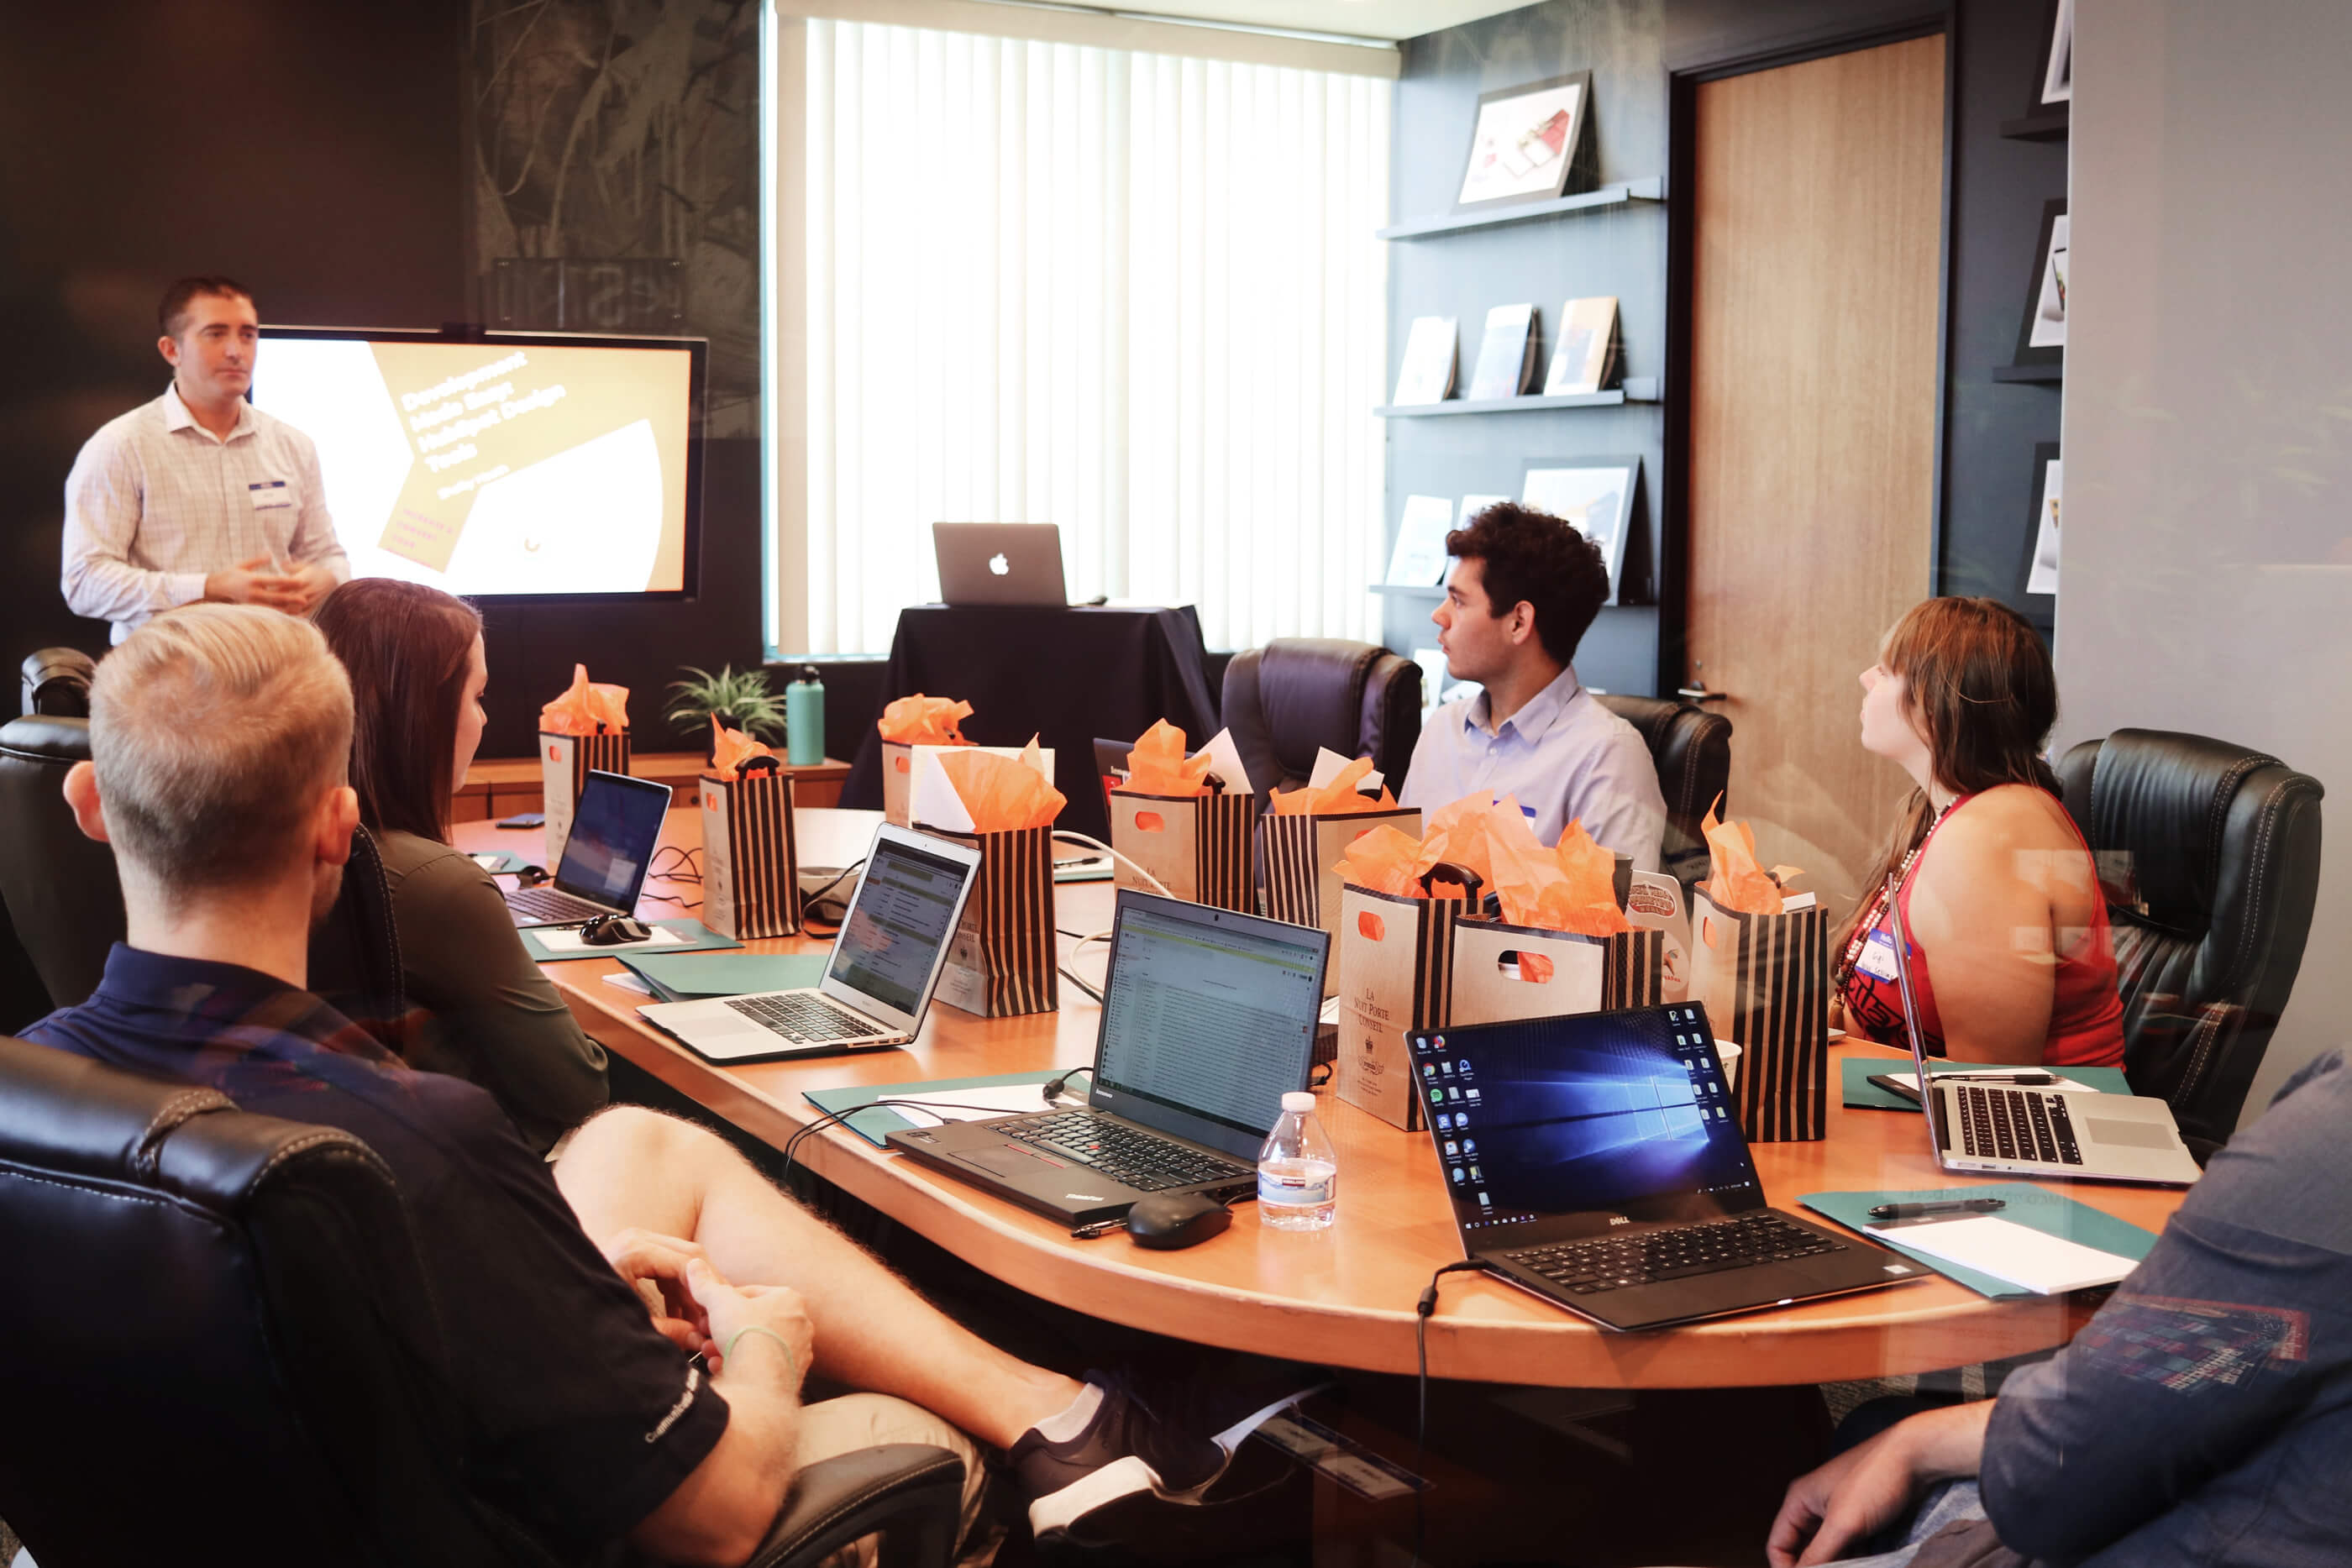 Opinion: Getting the lowdown on the latest videoconferencing platforms